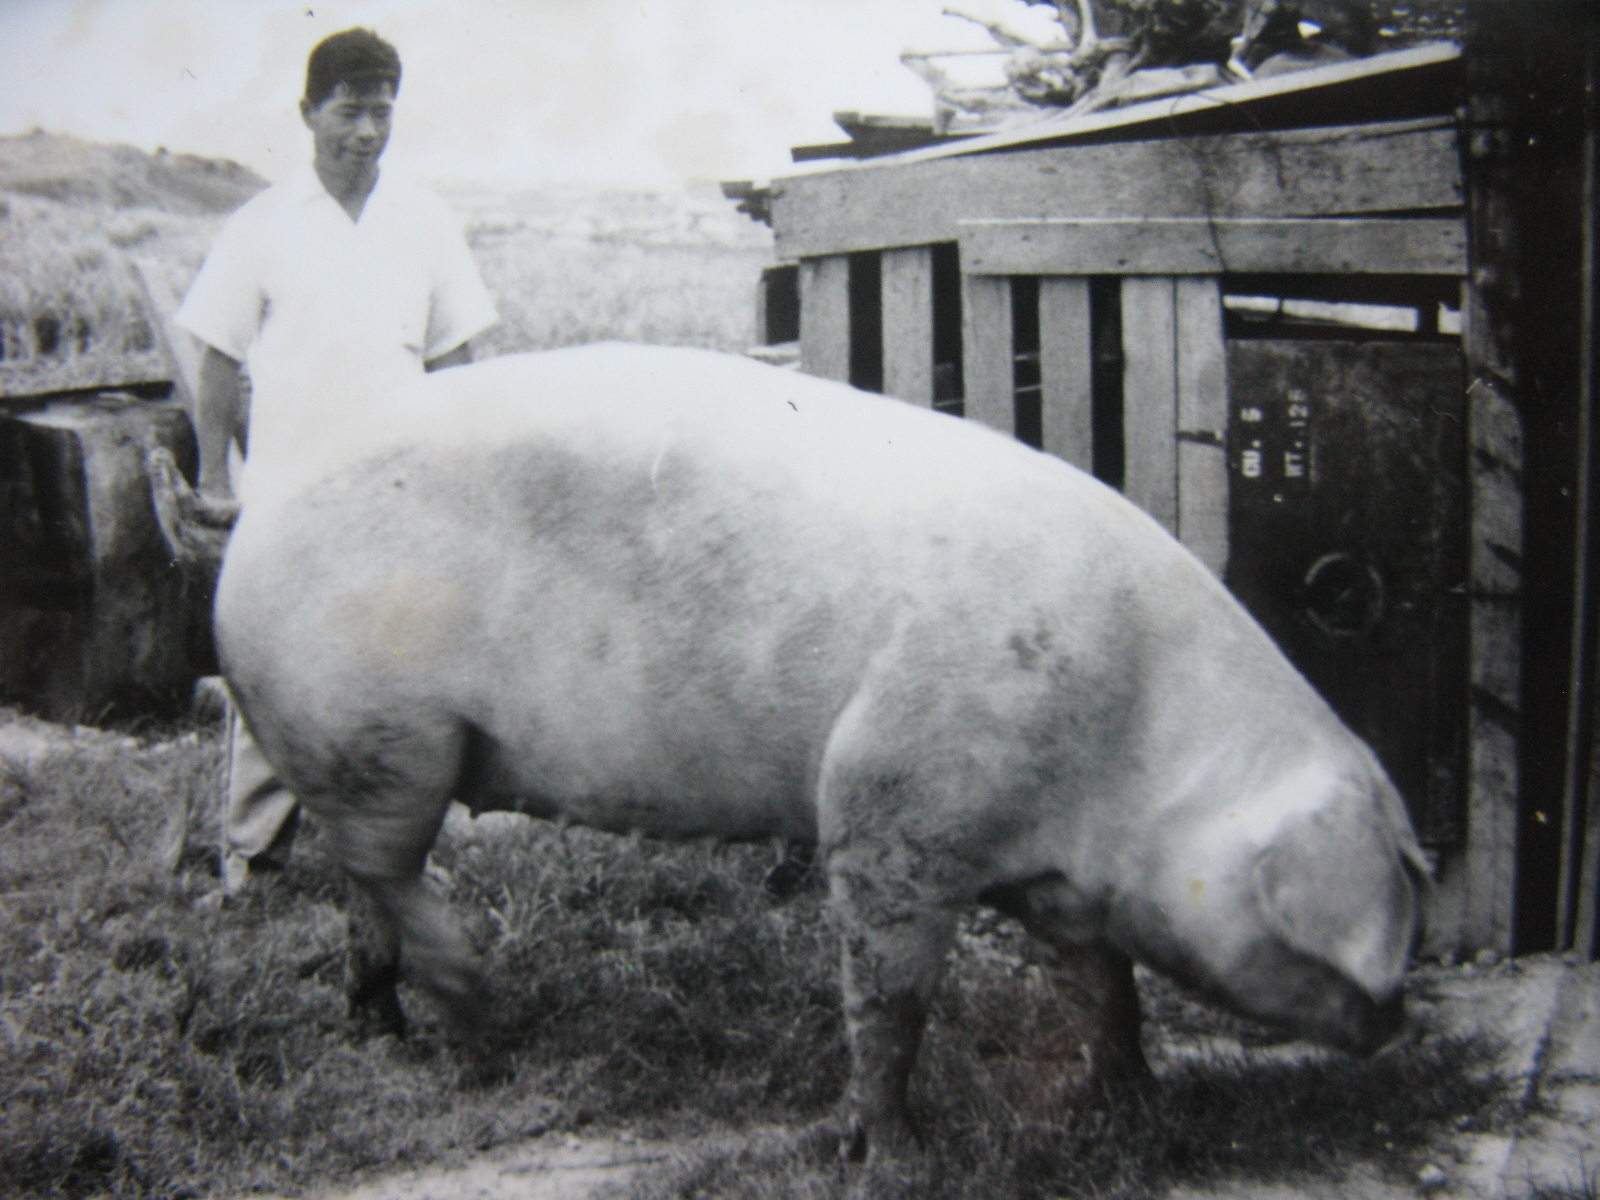 This 1948 photo shows Seiko Komesu with his Chester White. Komesu, now a healthy 94, was among the 15 Ginowan farmers who entered a lottery to receive a pig. Inset: Seiko Komesu recently at age 94. (Photo courtesy Dan Nakasone)